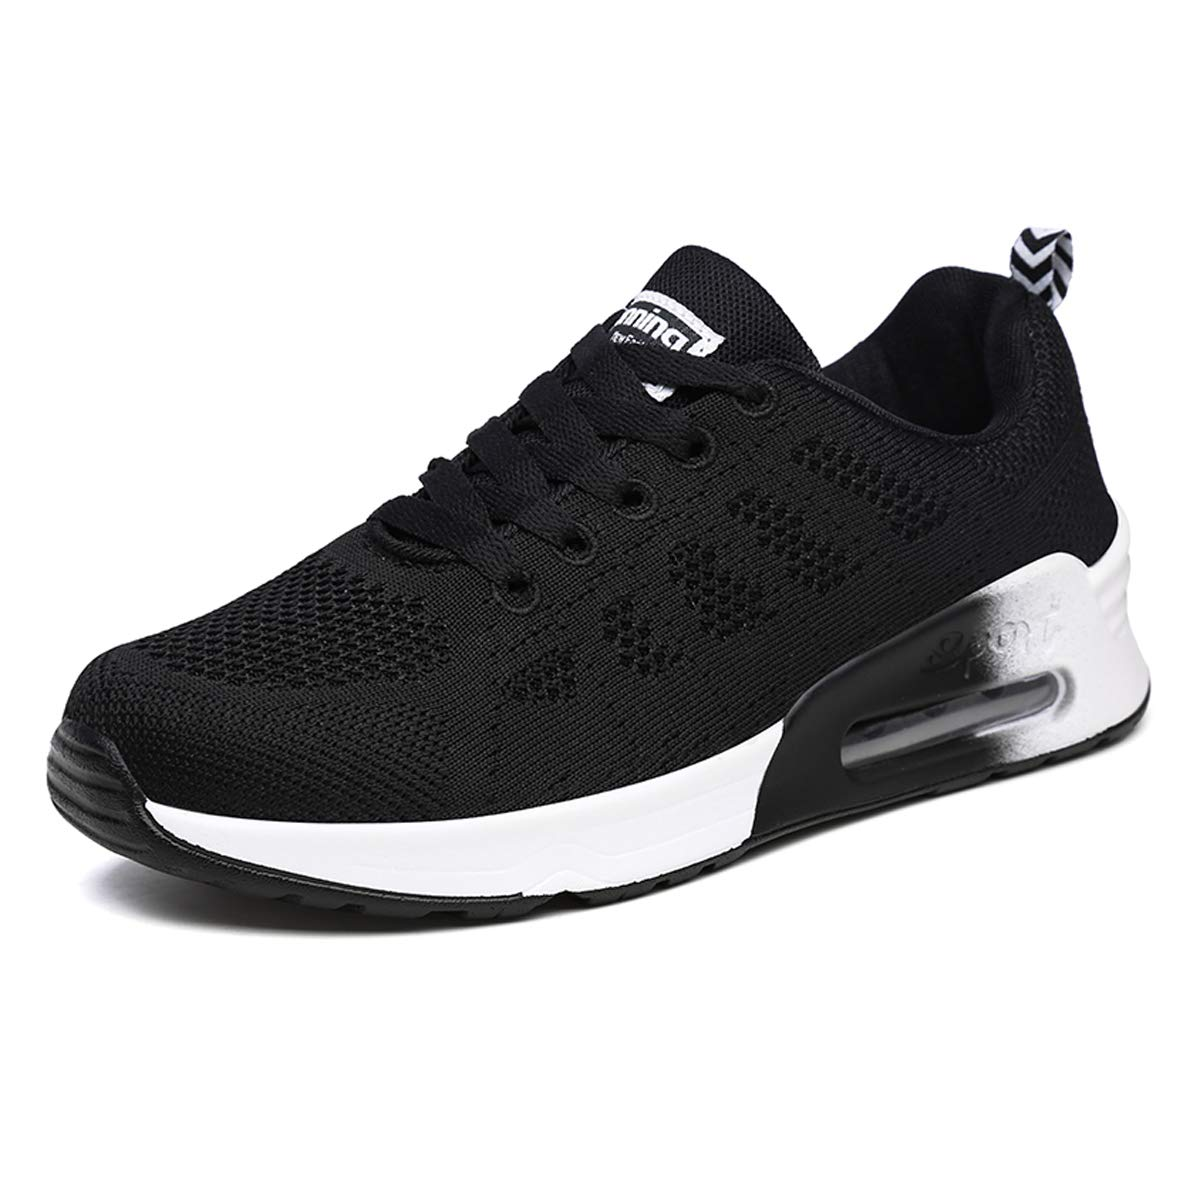 Womens Mesh Lace Up Trainers Sneakers Ladies Lightweight Sport Pumps Shoes Size